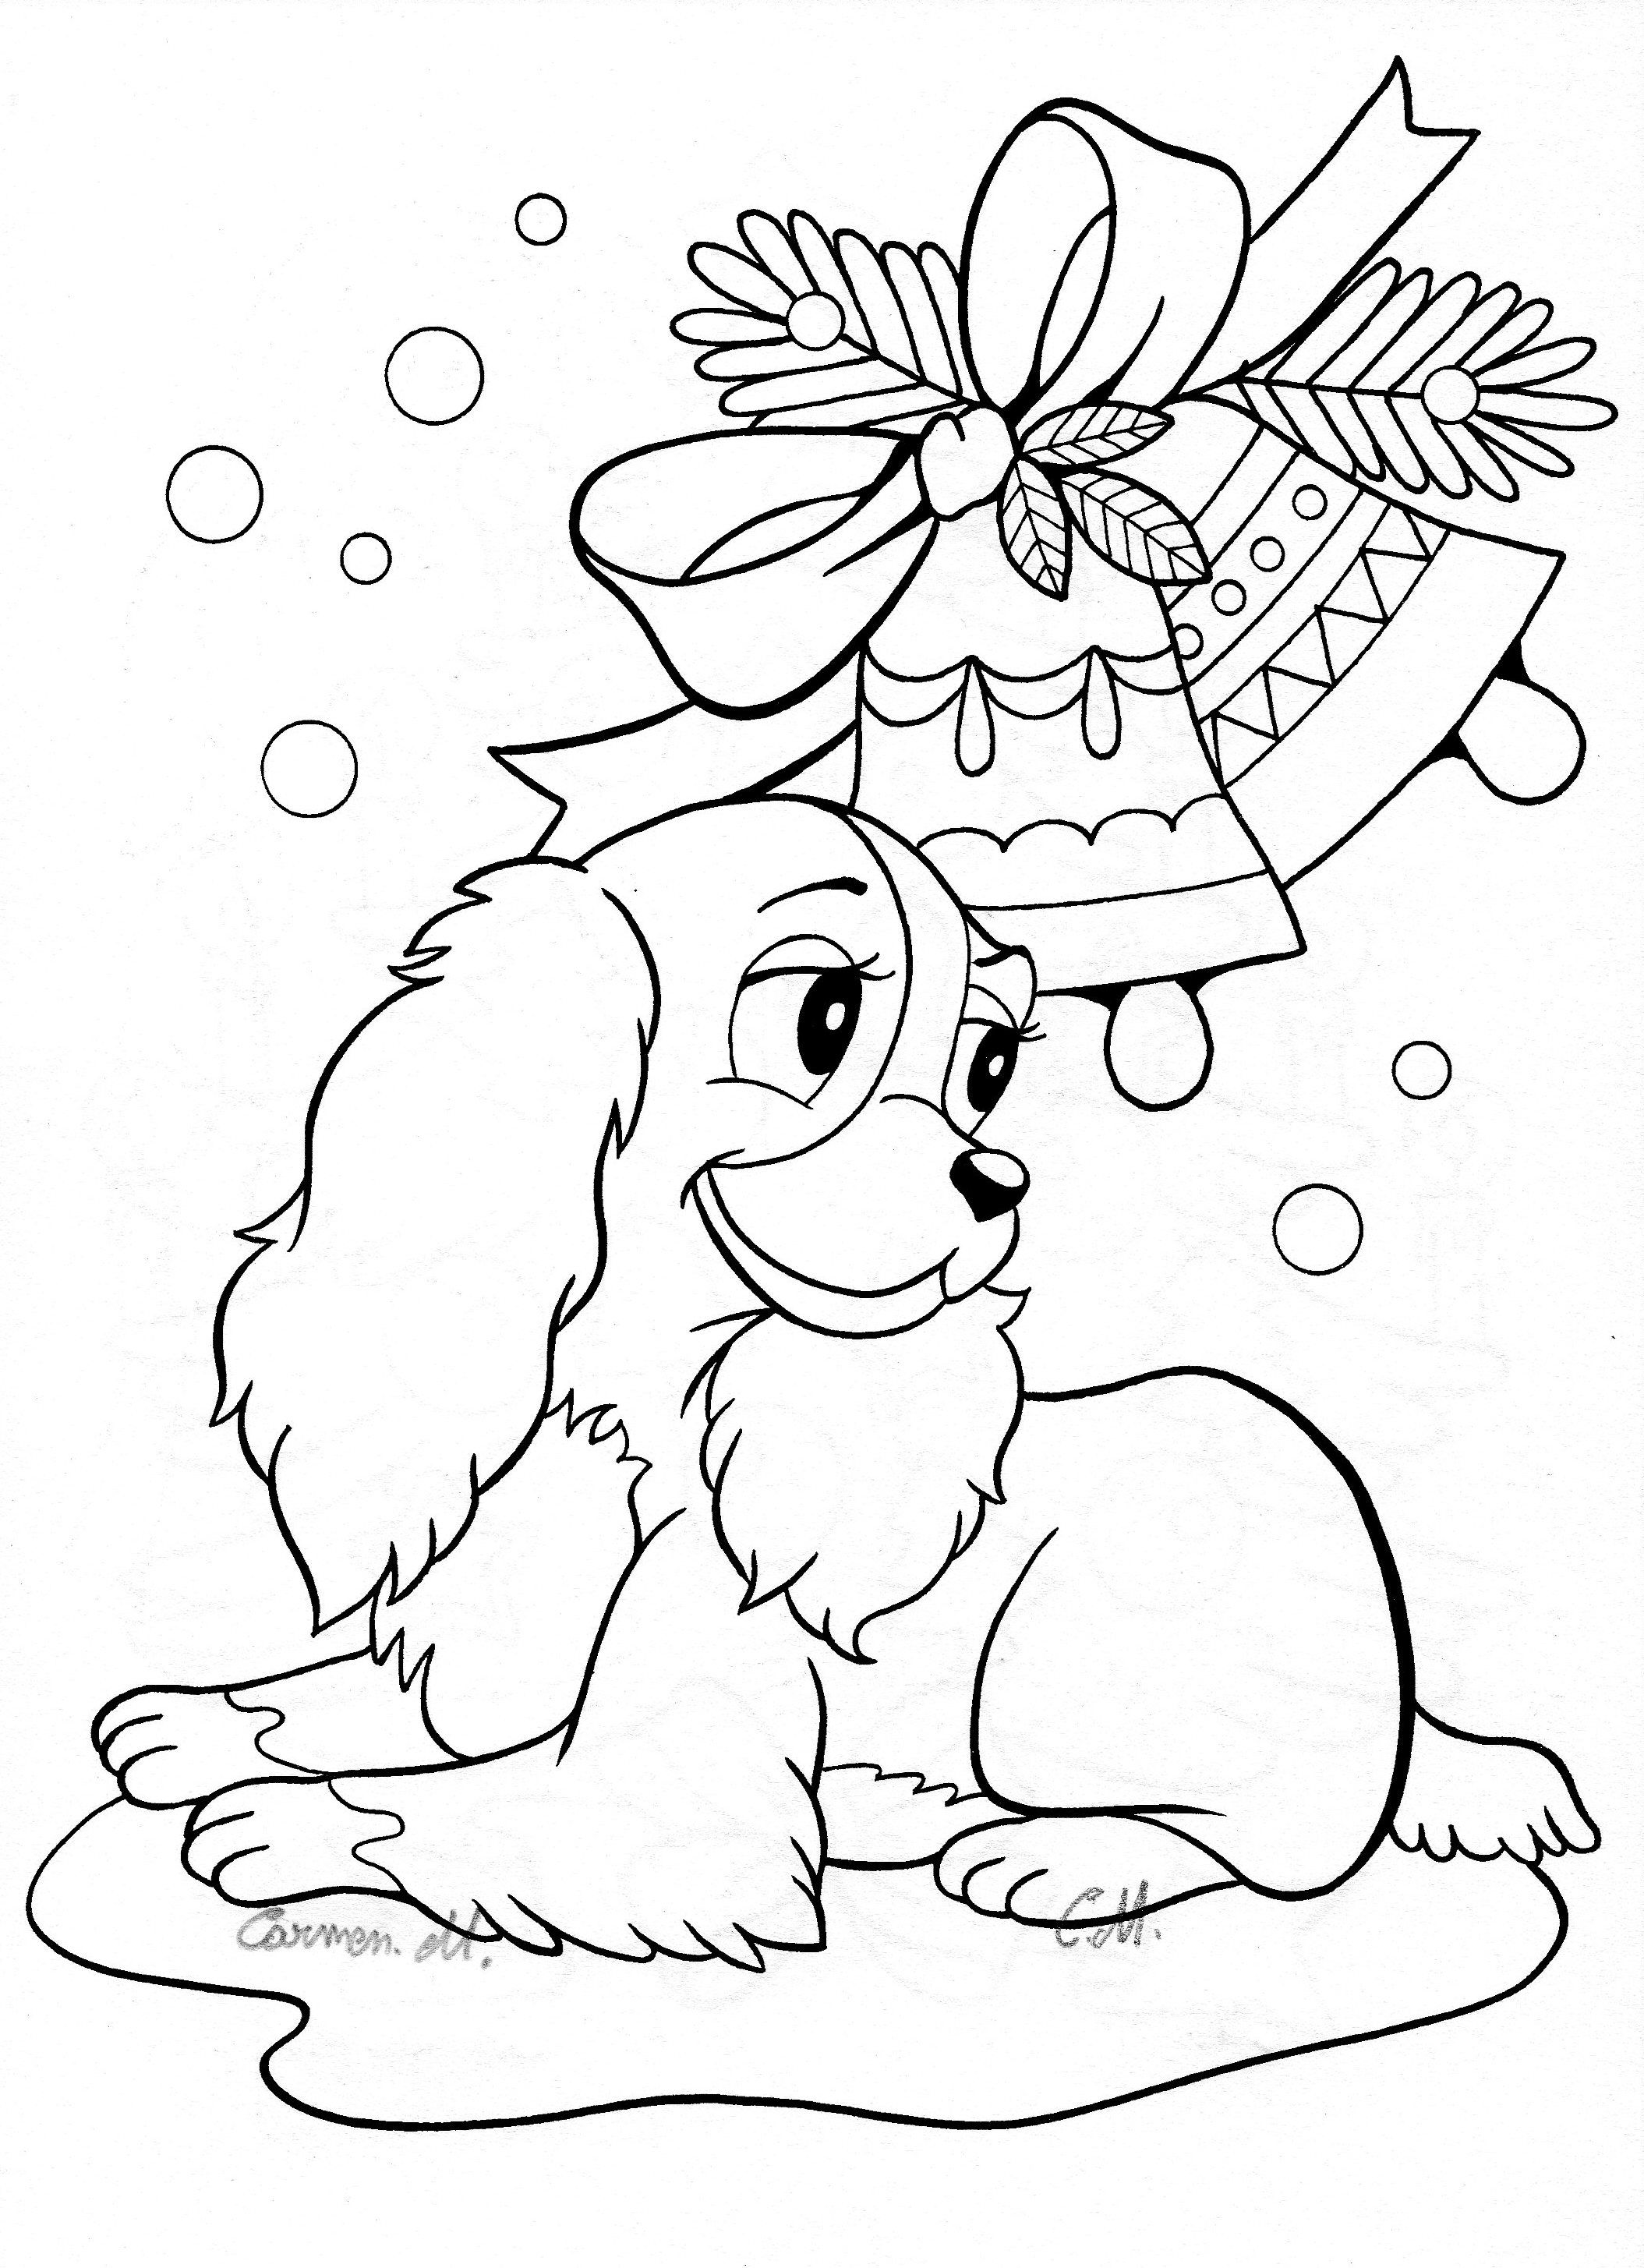 cute coloring pages lady the tramp christmas - Cute Coloring Pages Printable 2